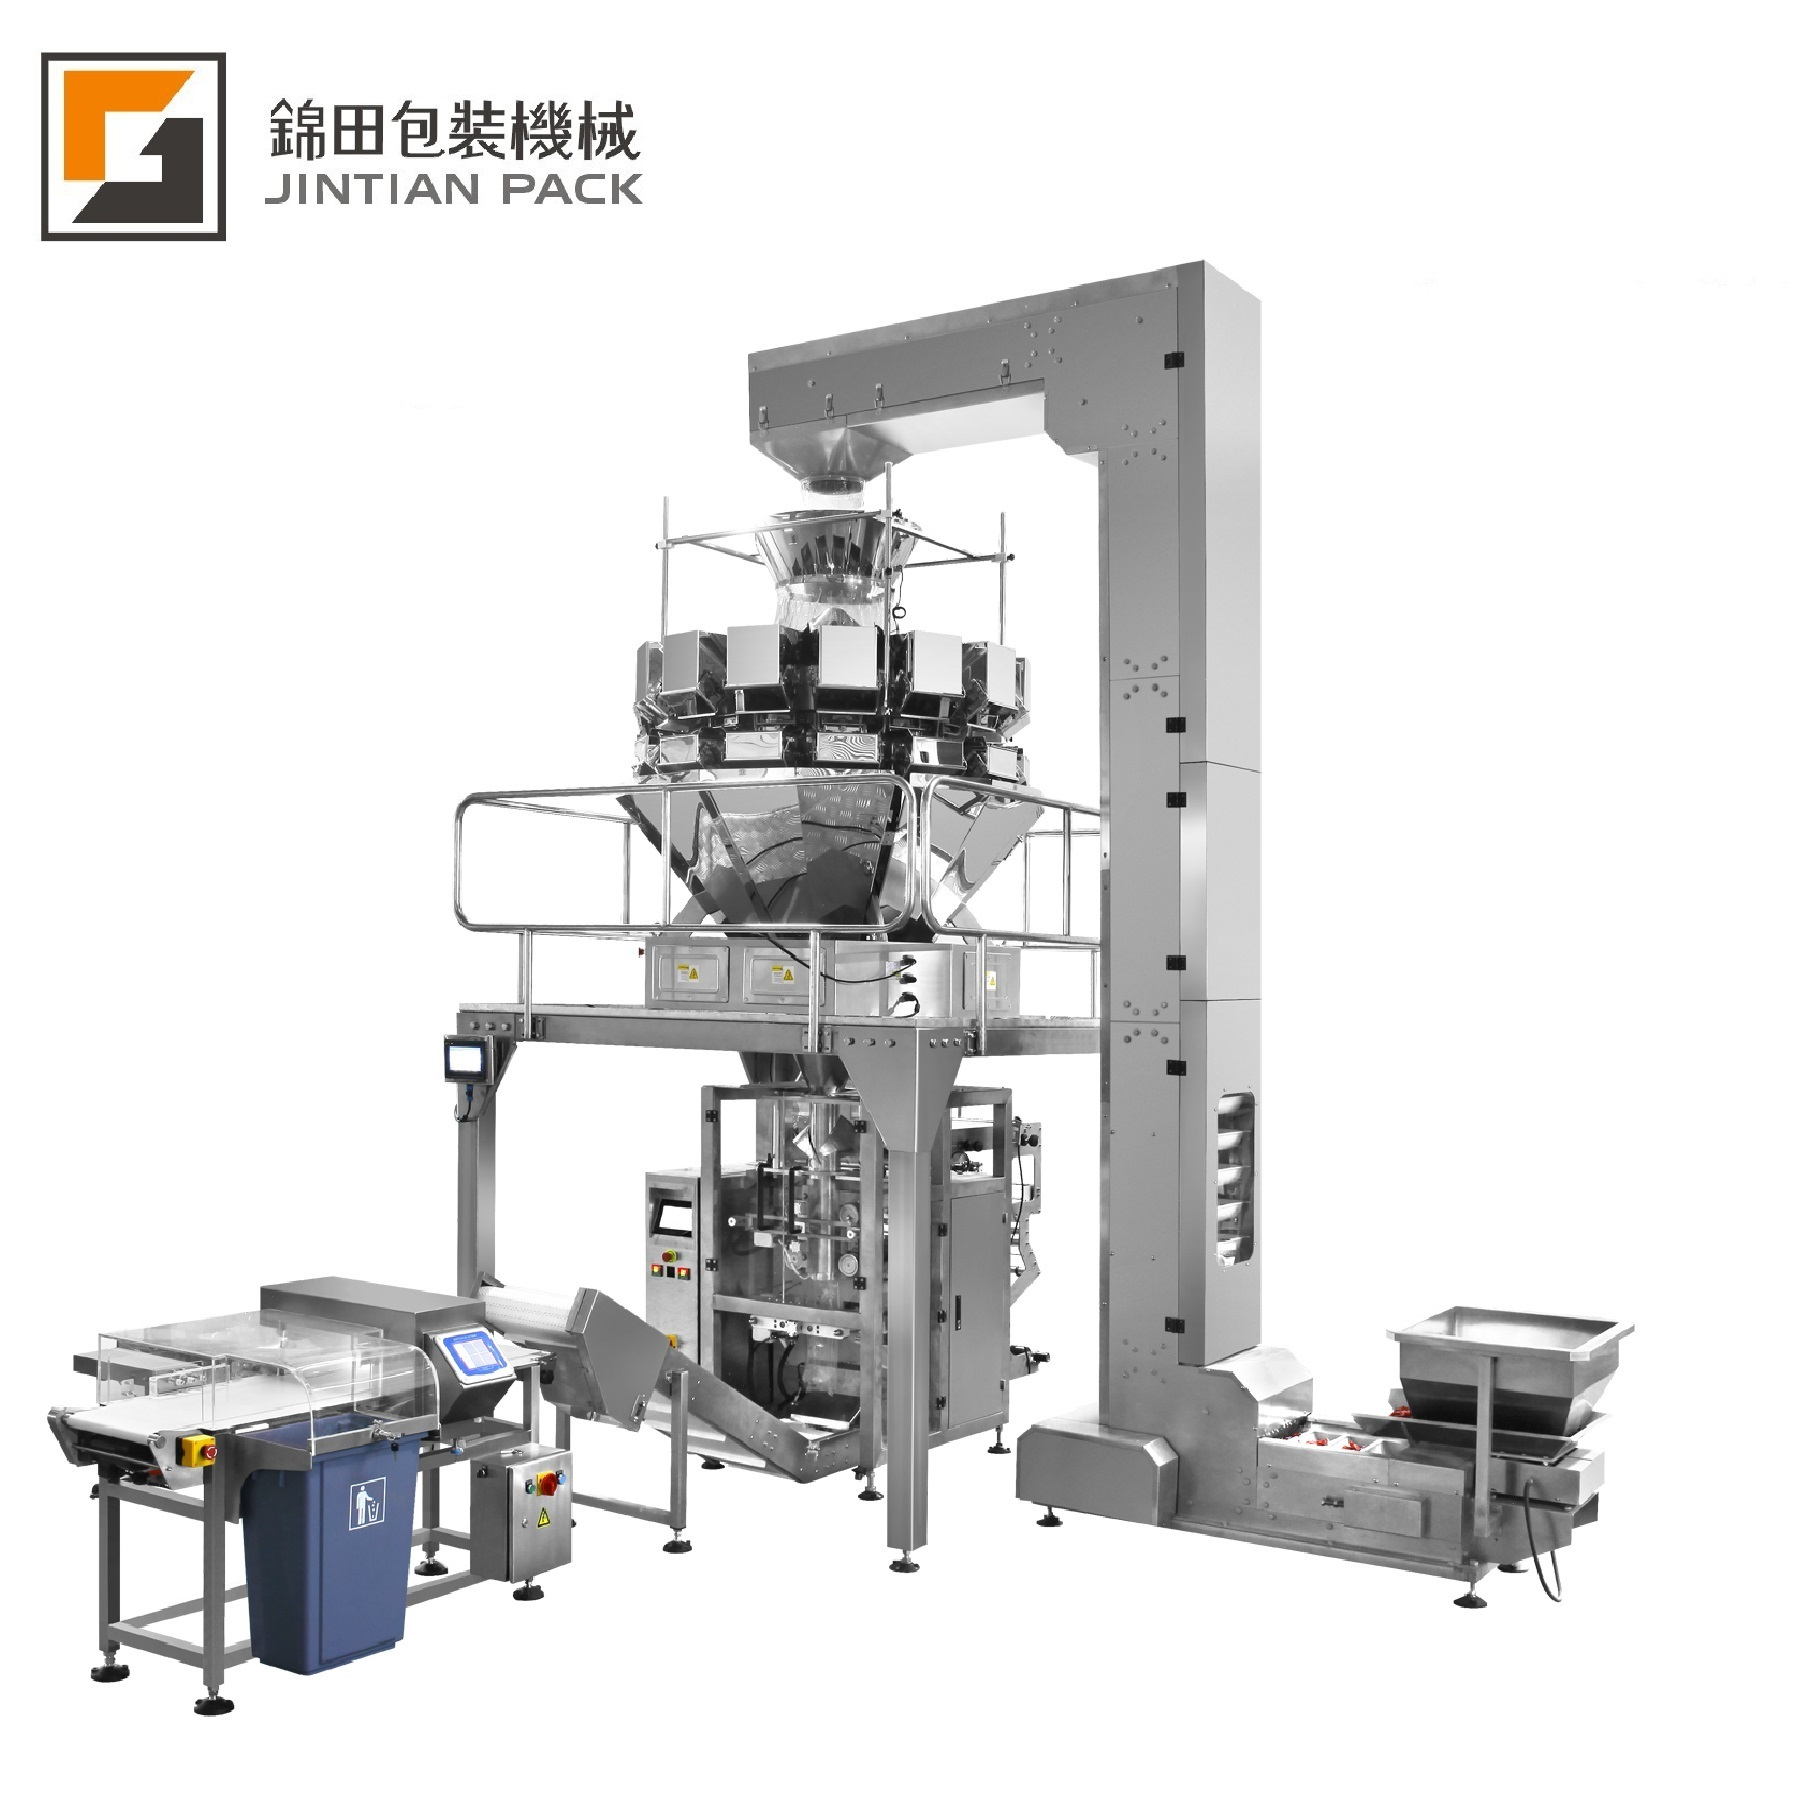 JT-460W 4 edge sealing packing line with multi-head weigher